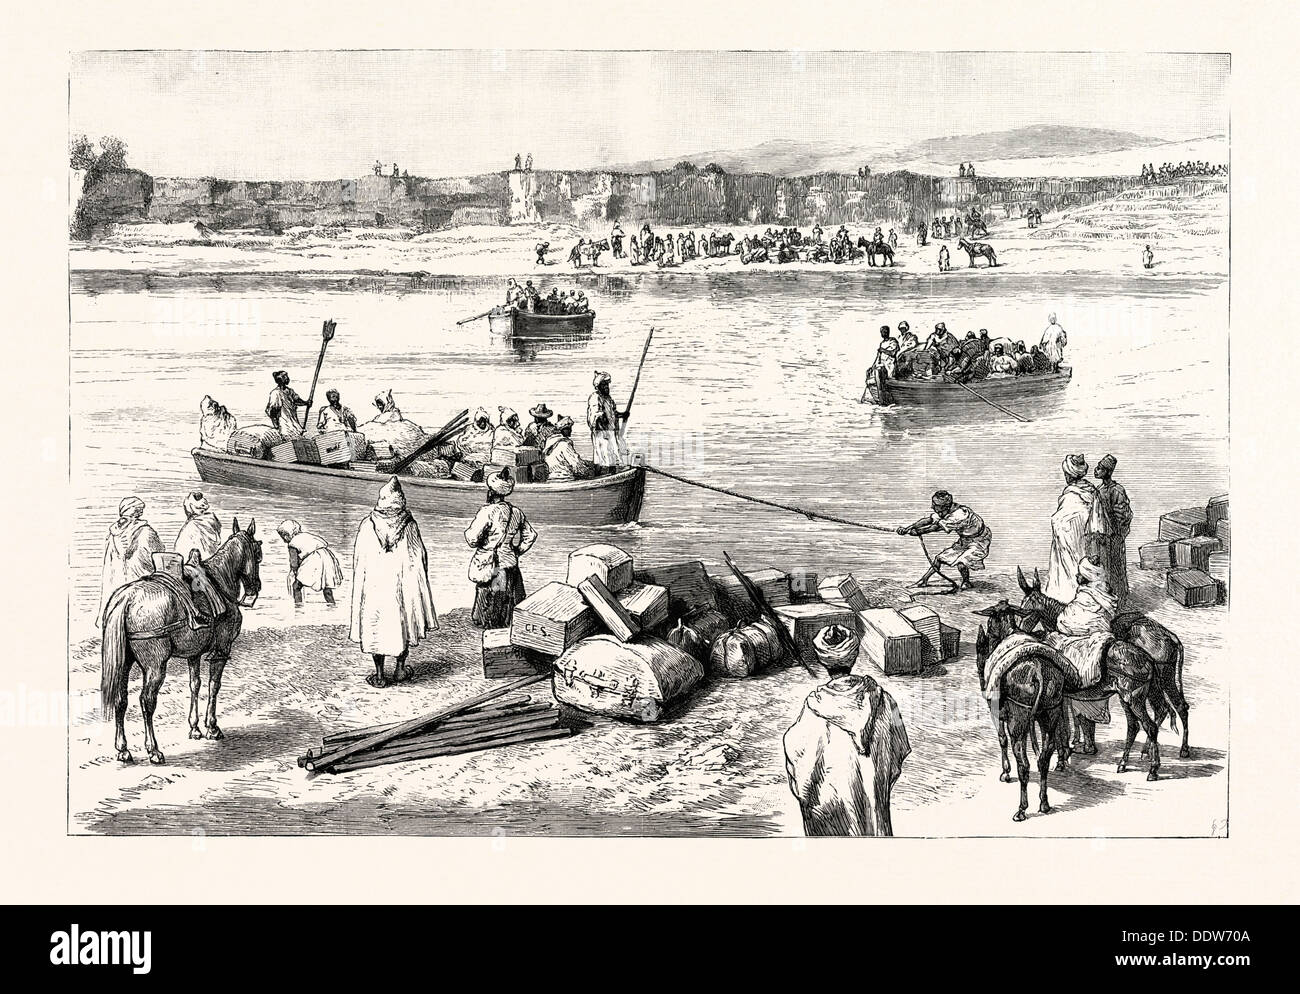 SIR CHARLES EUAN SMITH'S MISSION TO THE COURT OF MOROCCO: THE PASSAGE OF THE RIVER SEBU, 1892 engraving - Stock Image